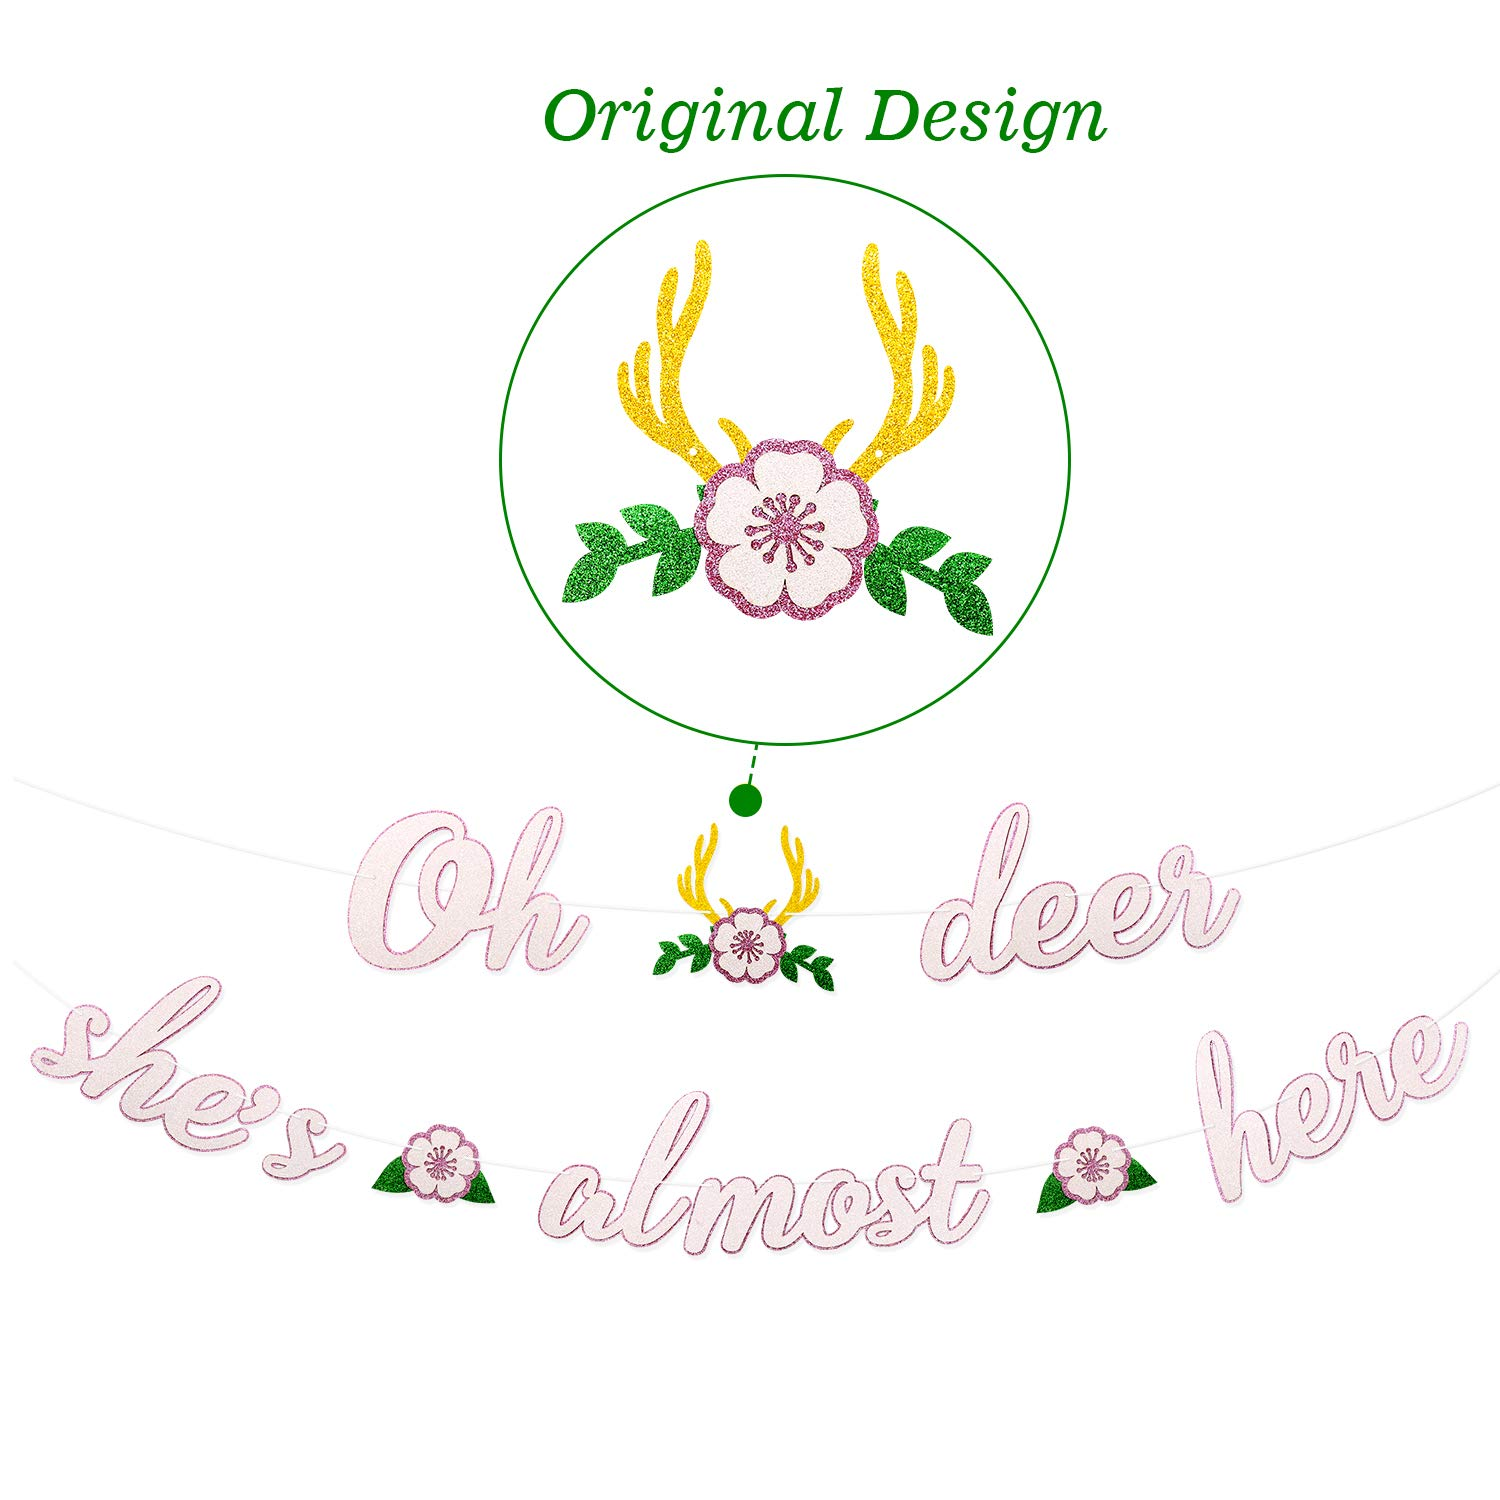 Deer Baby Shower Banner Oh Deer She's Almost Here Banner with Deer Antler and Flowers Boho Floral Themed Party Decor Woodland Animal Baby Shower Pink and White Decoration Homemade by Faisichocalato (Image #3)